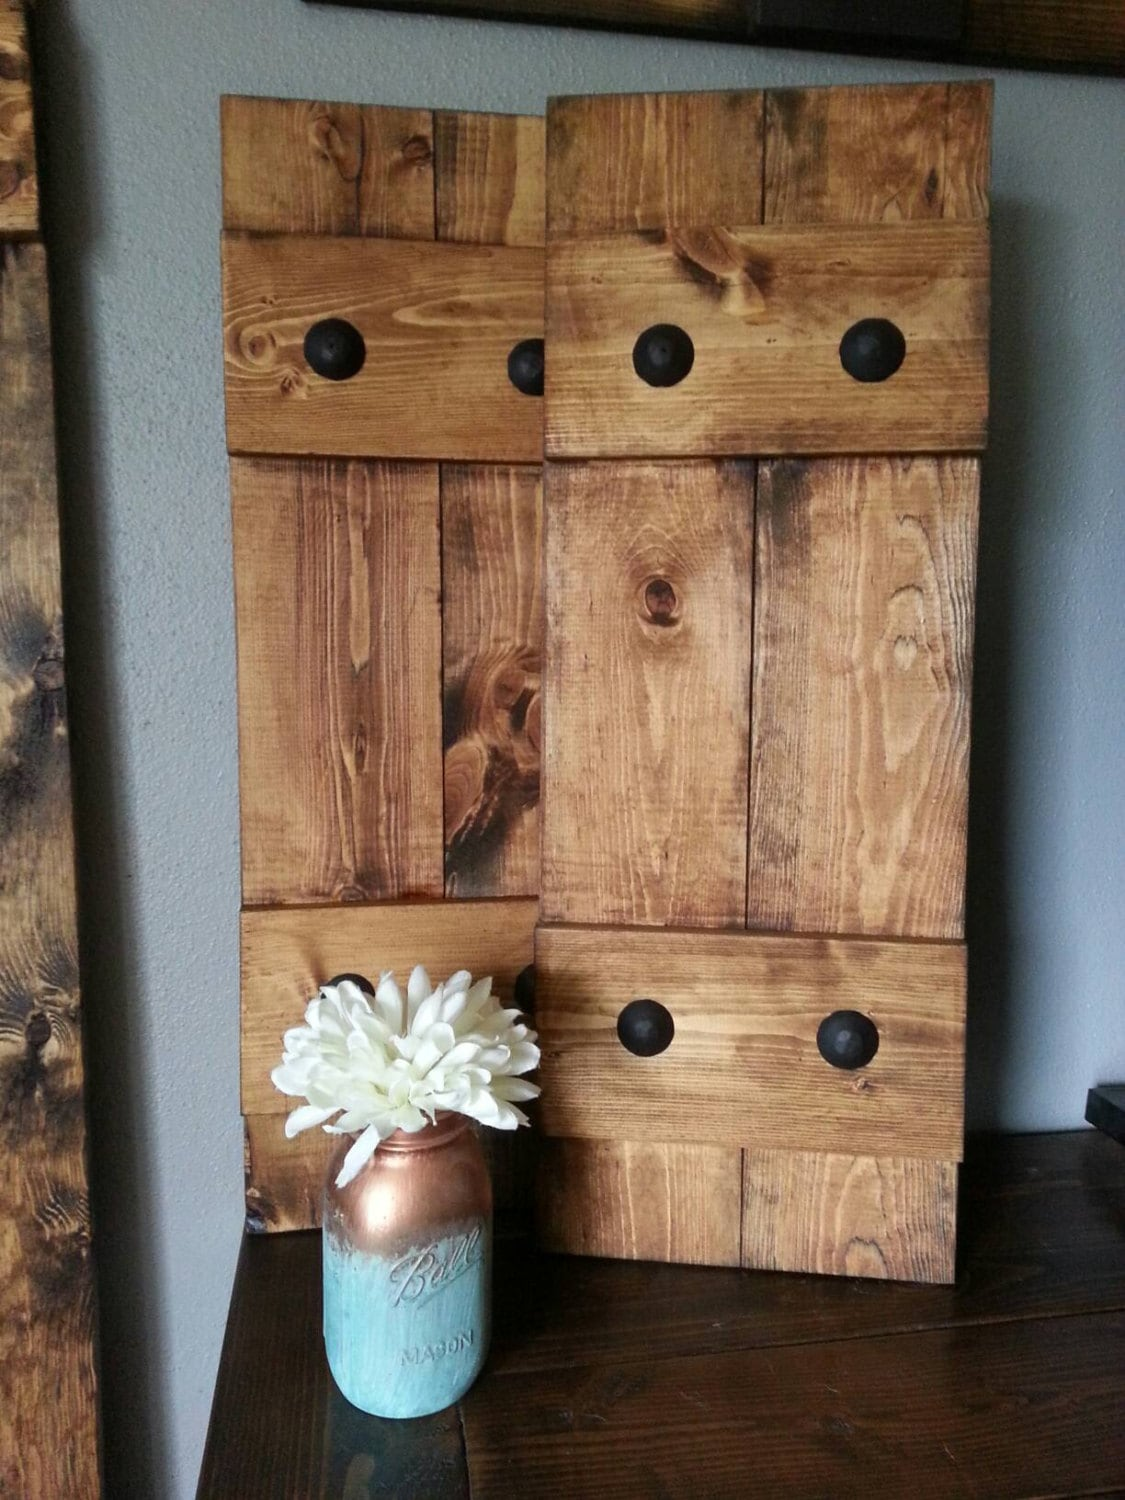 Decorative Metal Shutters For Living Room Interior Houston Tx: RUSTIC Wood Shutters With Clavos